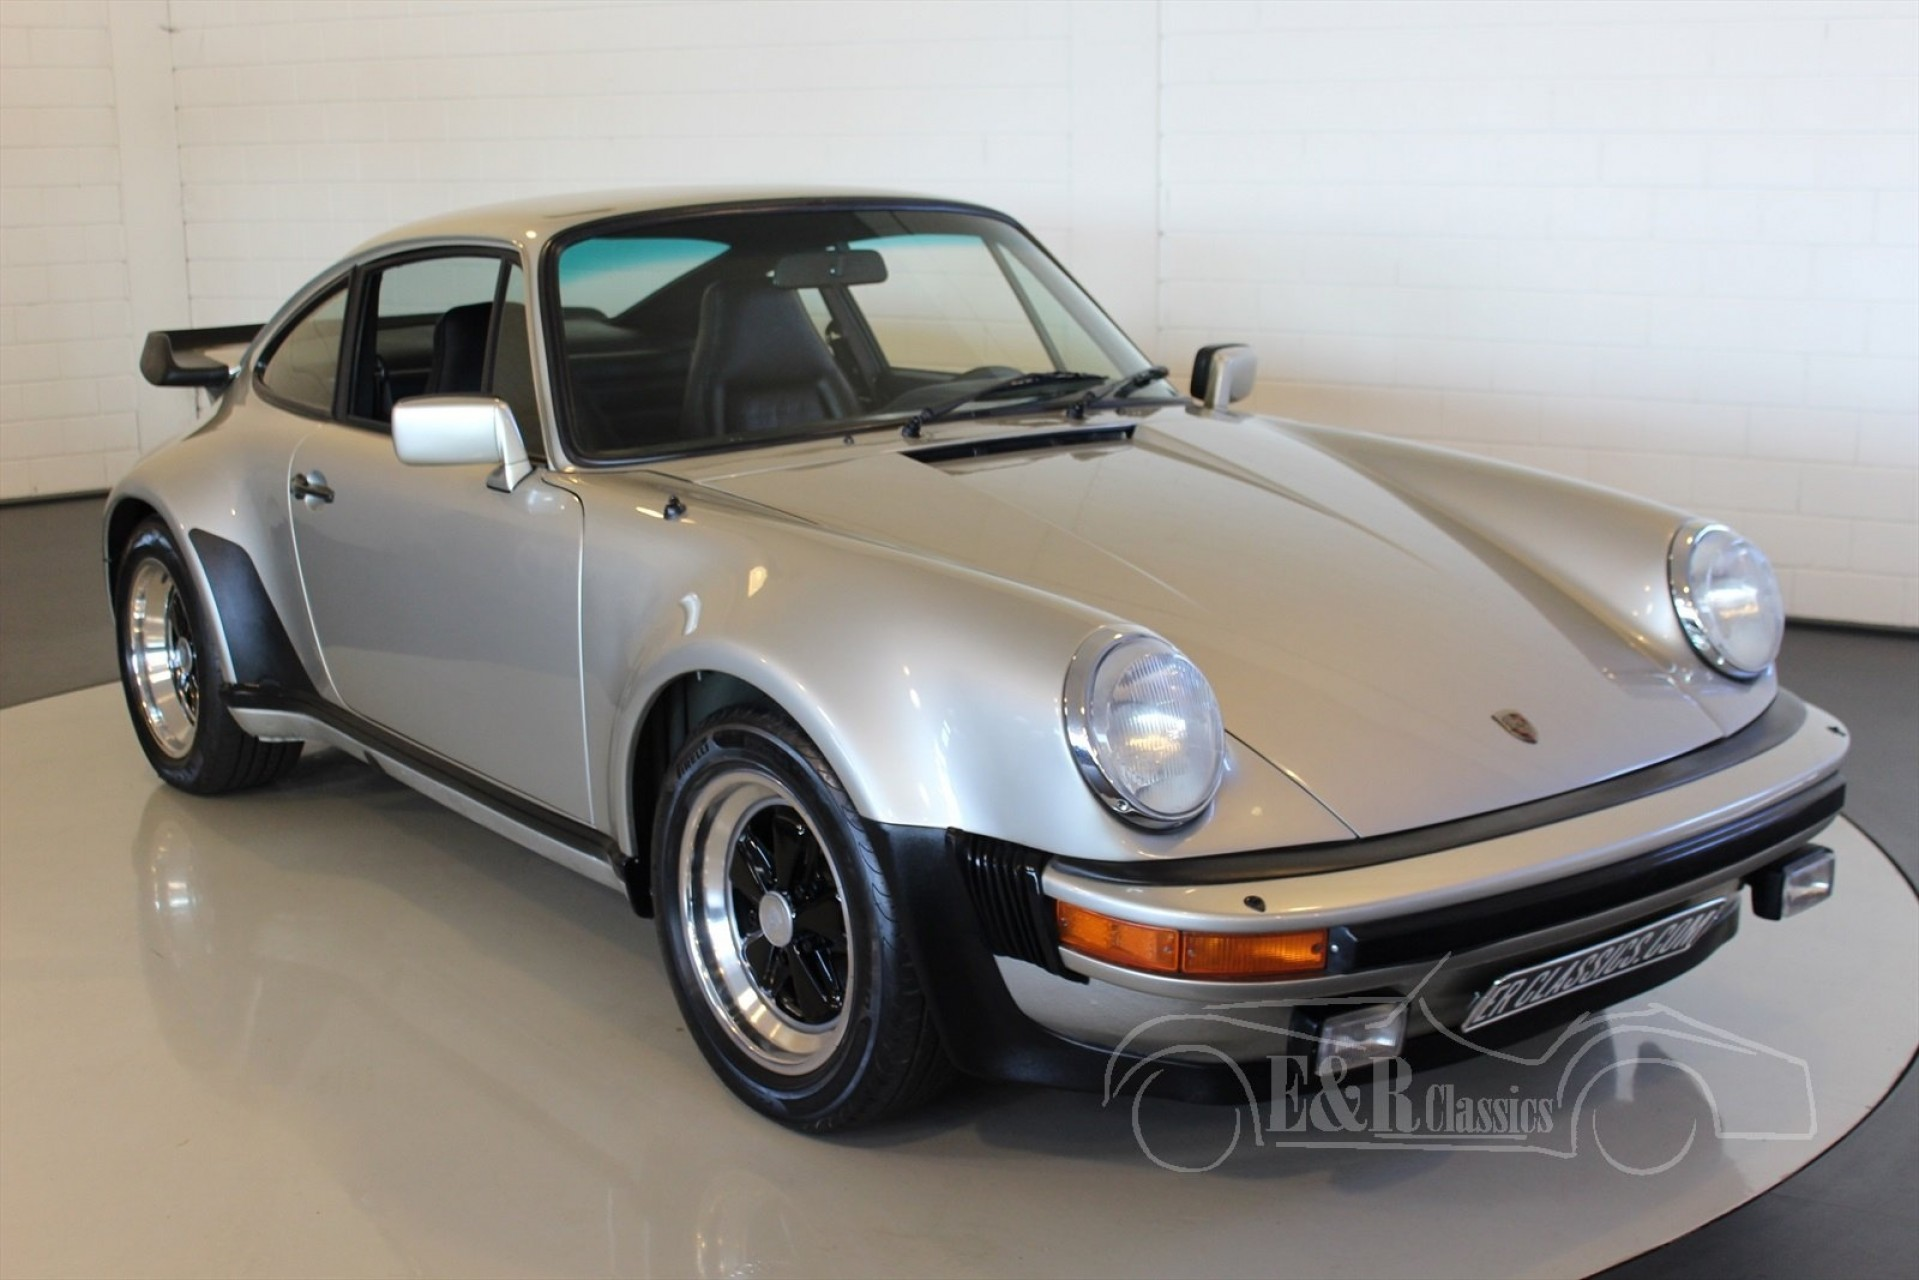 porsche 930 turbo 1983 for sale at erclassics. Black Bedroom Furniture Sets. Home Design Ideas